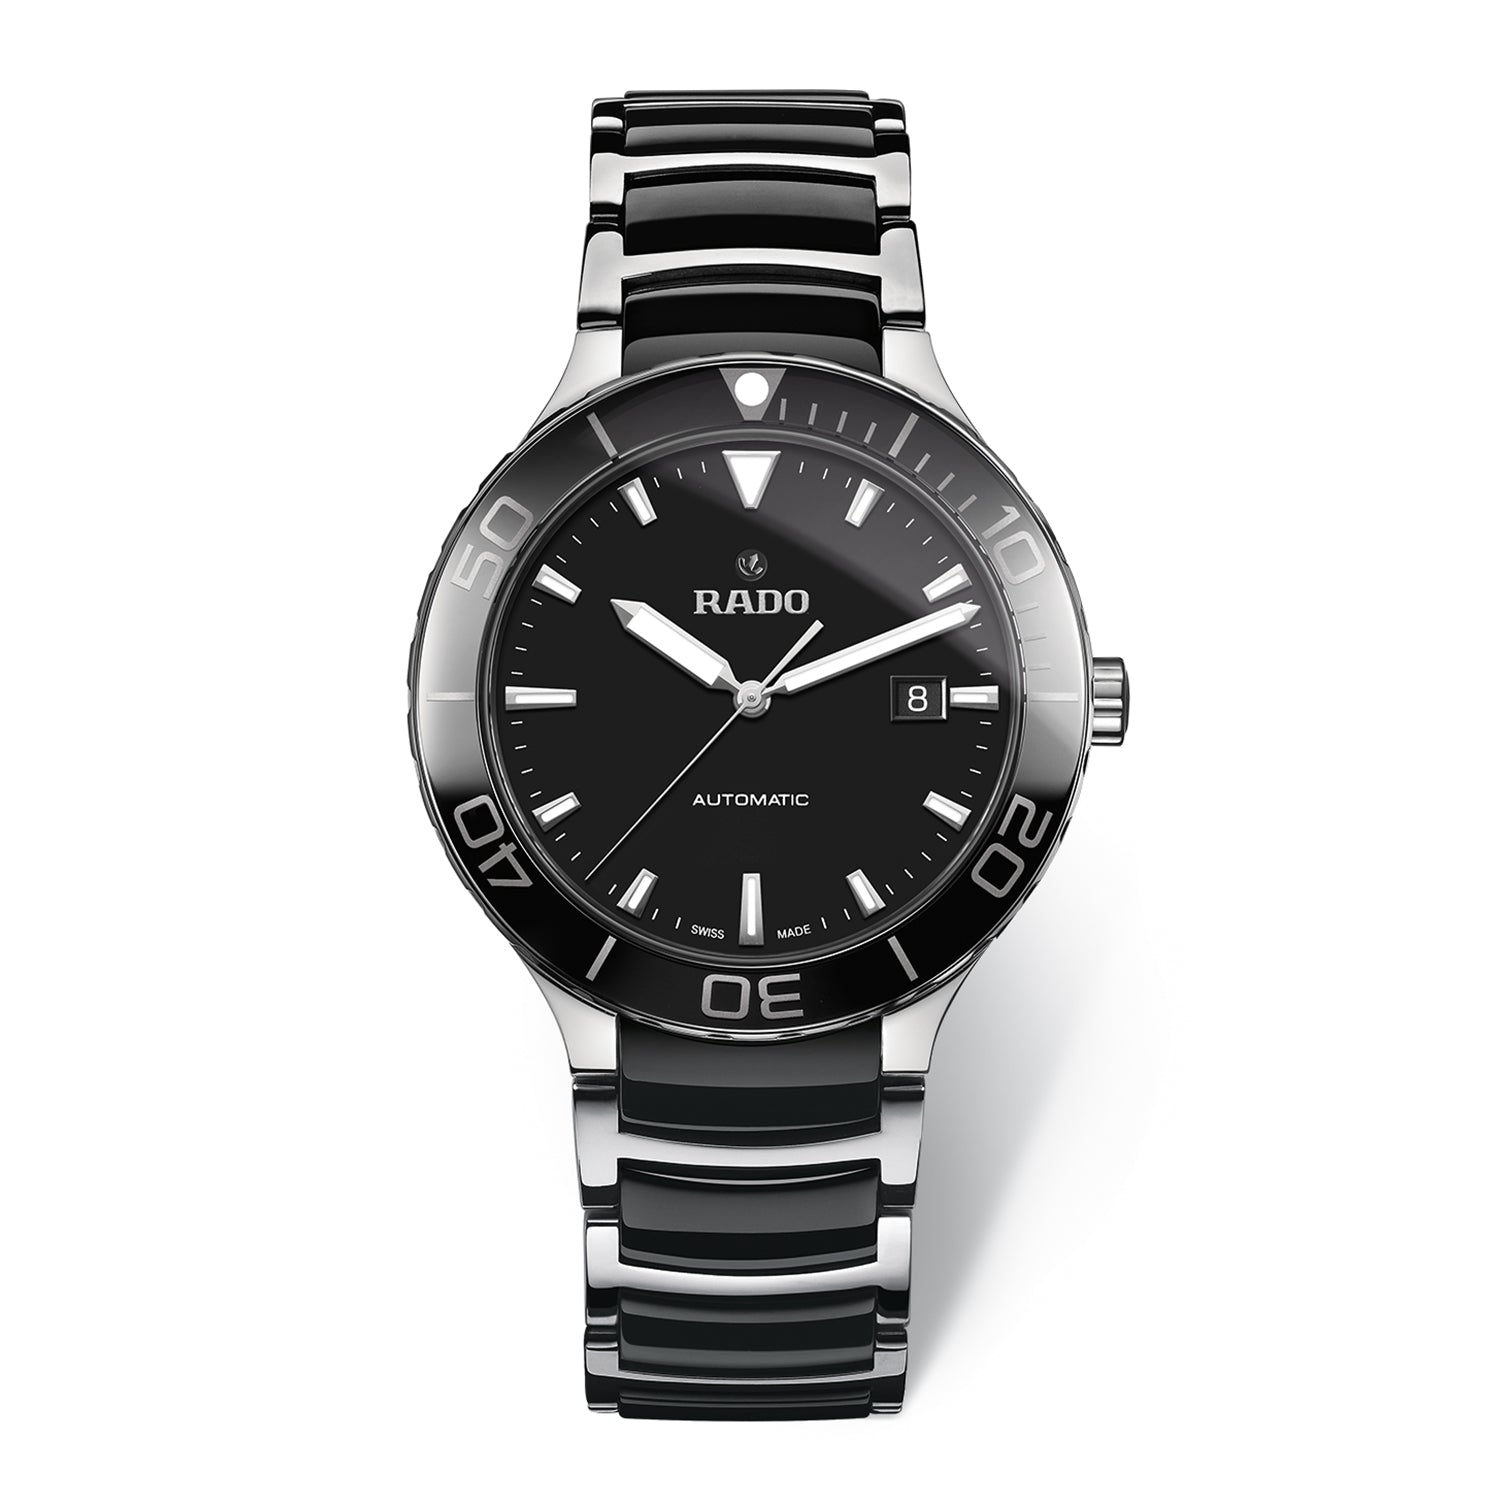 Rado Centrix XL watch, black dial with black turning bezel on stainless steel bracelet with black high-tech ceramic middle links